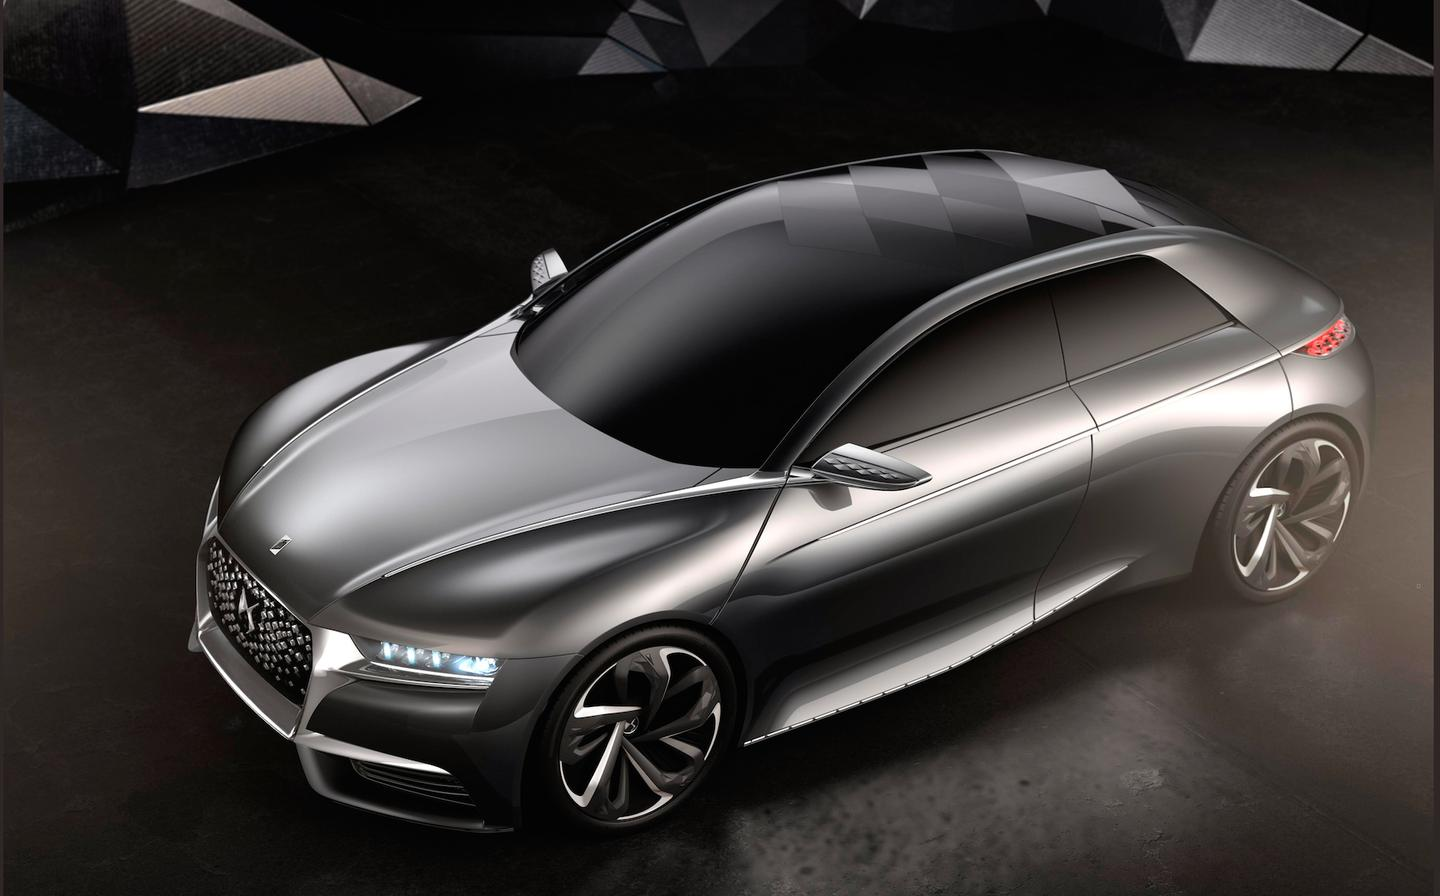 The Divine DS is Citroën's vision for its luxury flagship of the future